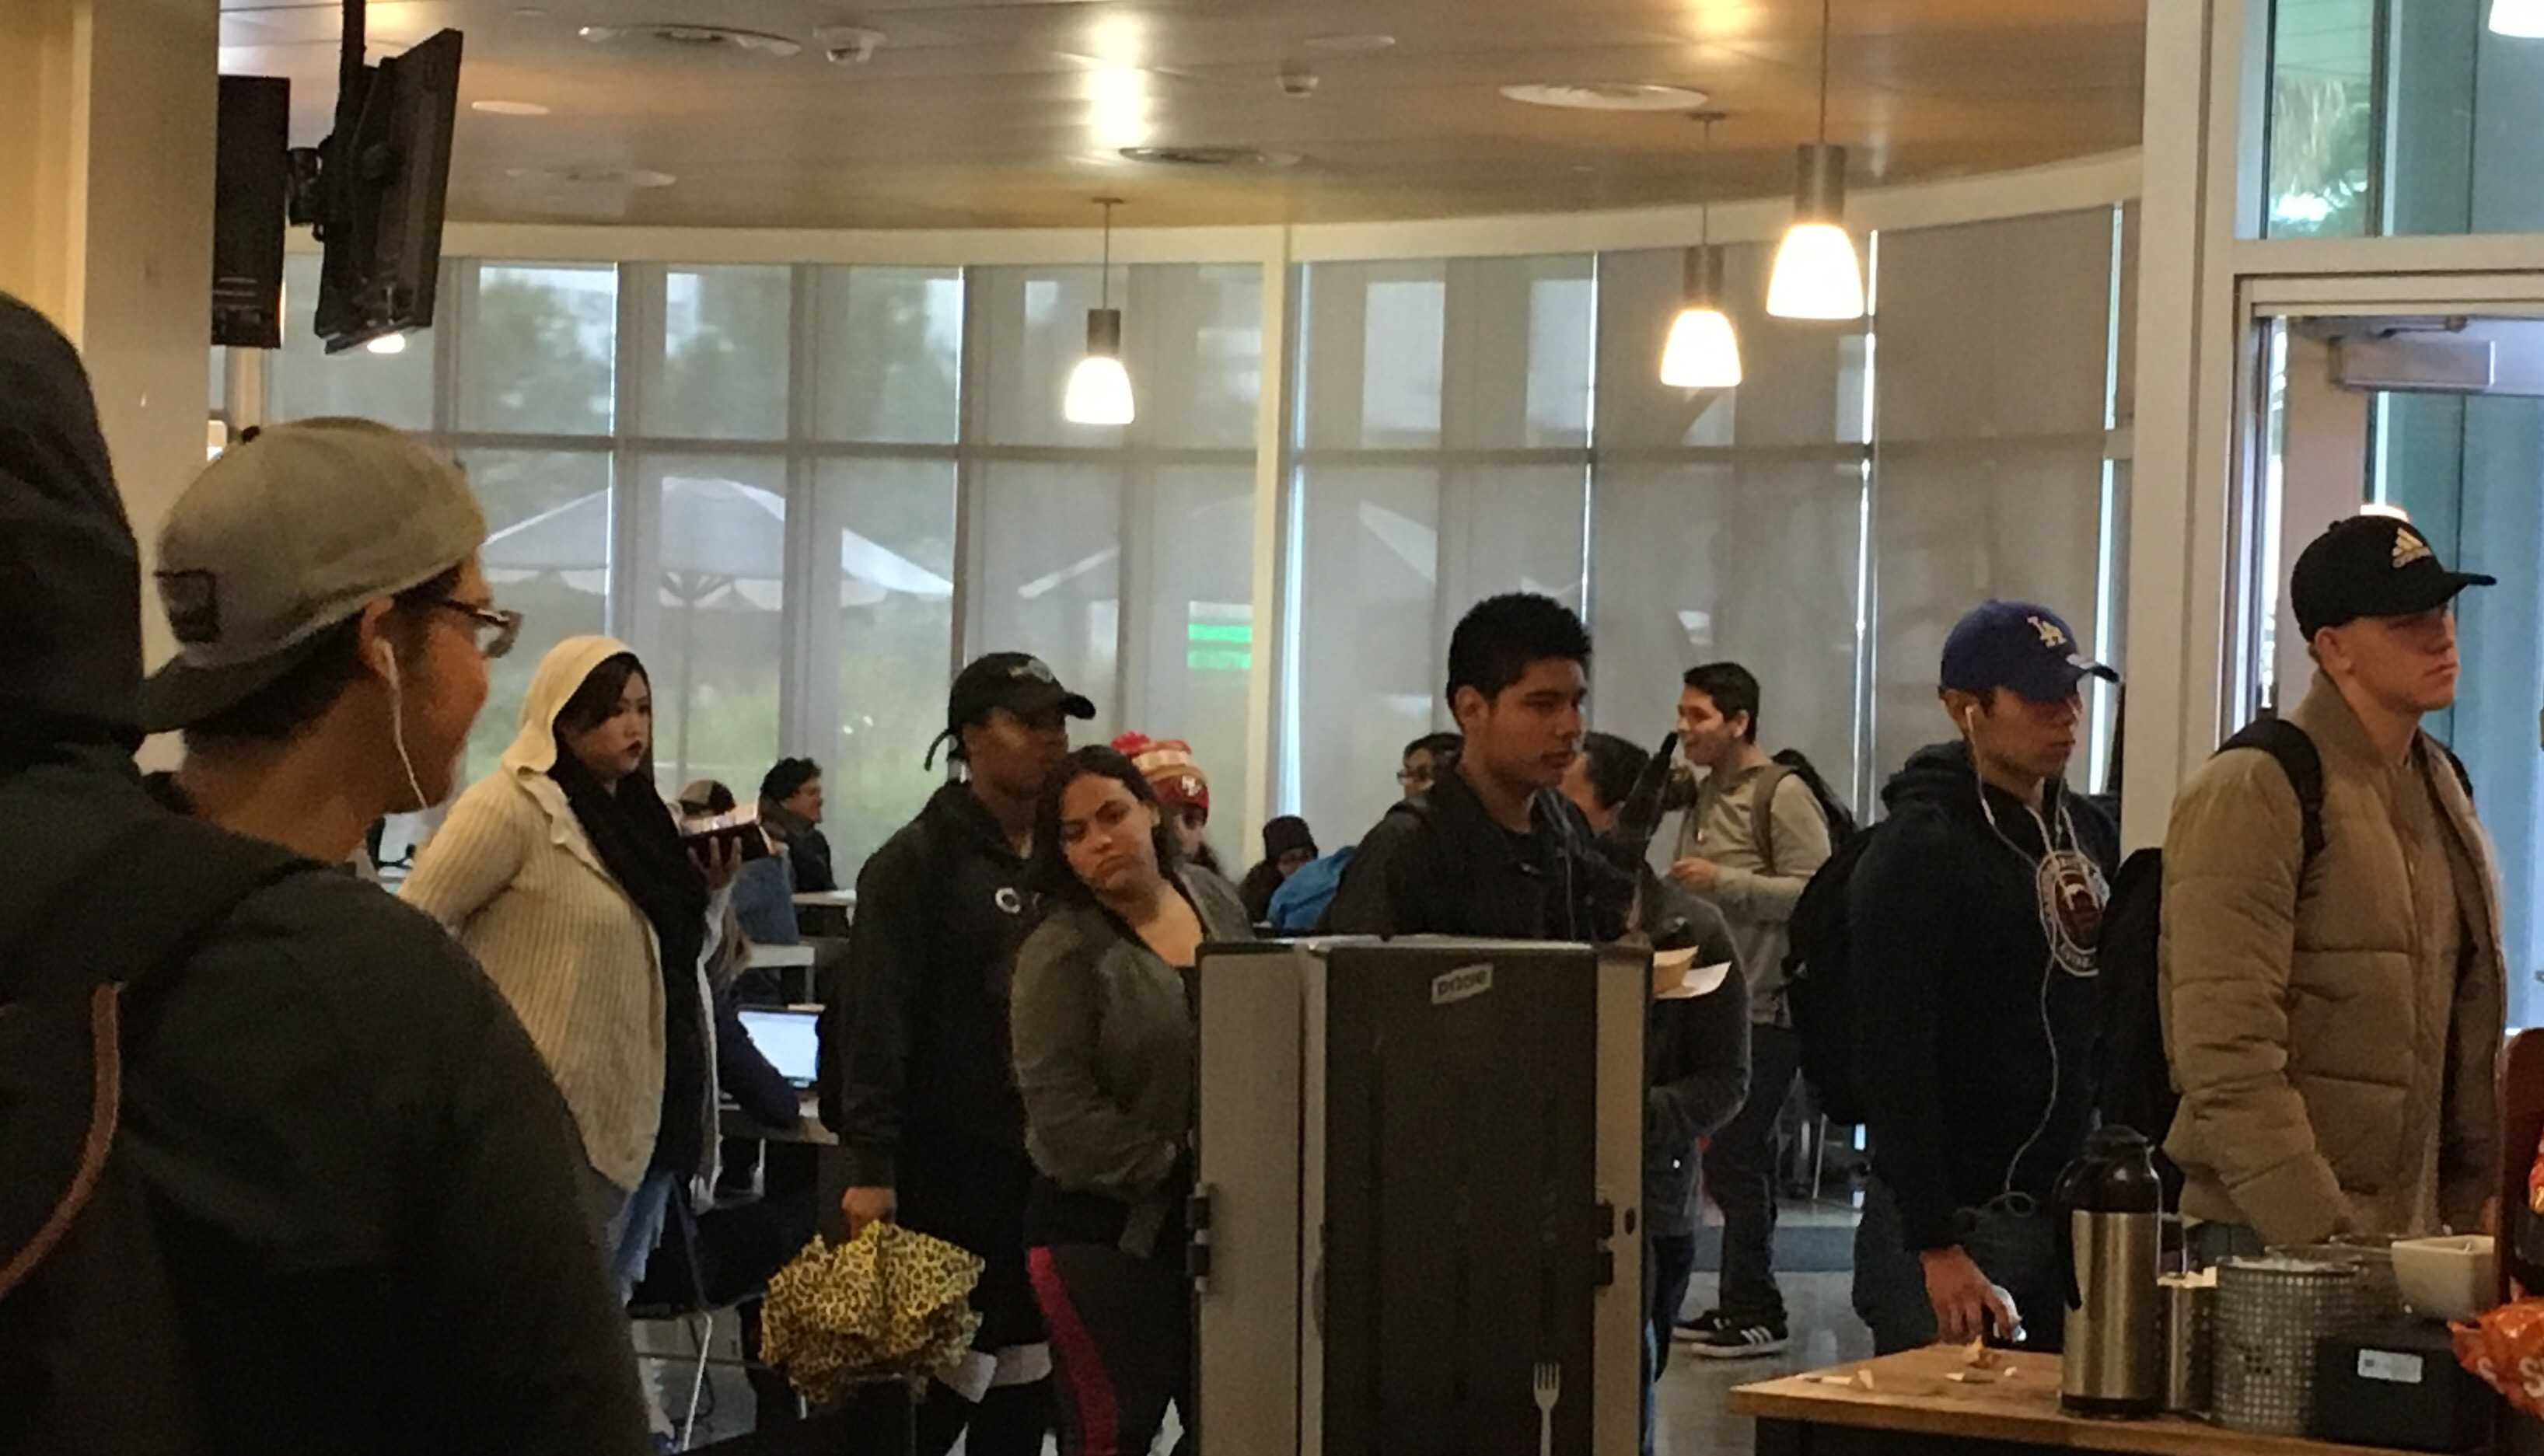 Frustrated students experience long waits at Rio Cafe. Some risk showing up late for class as a result.